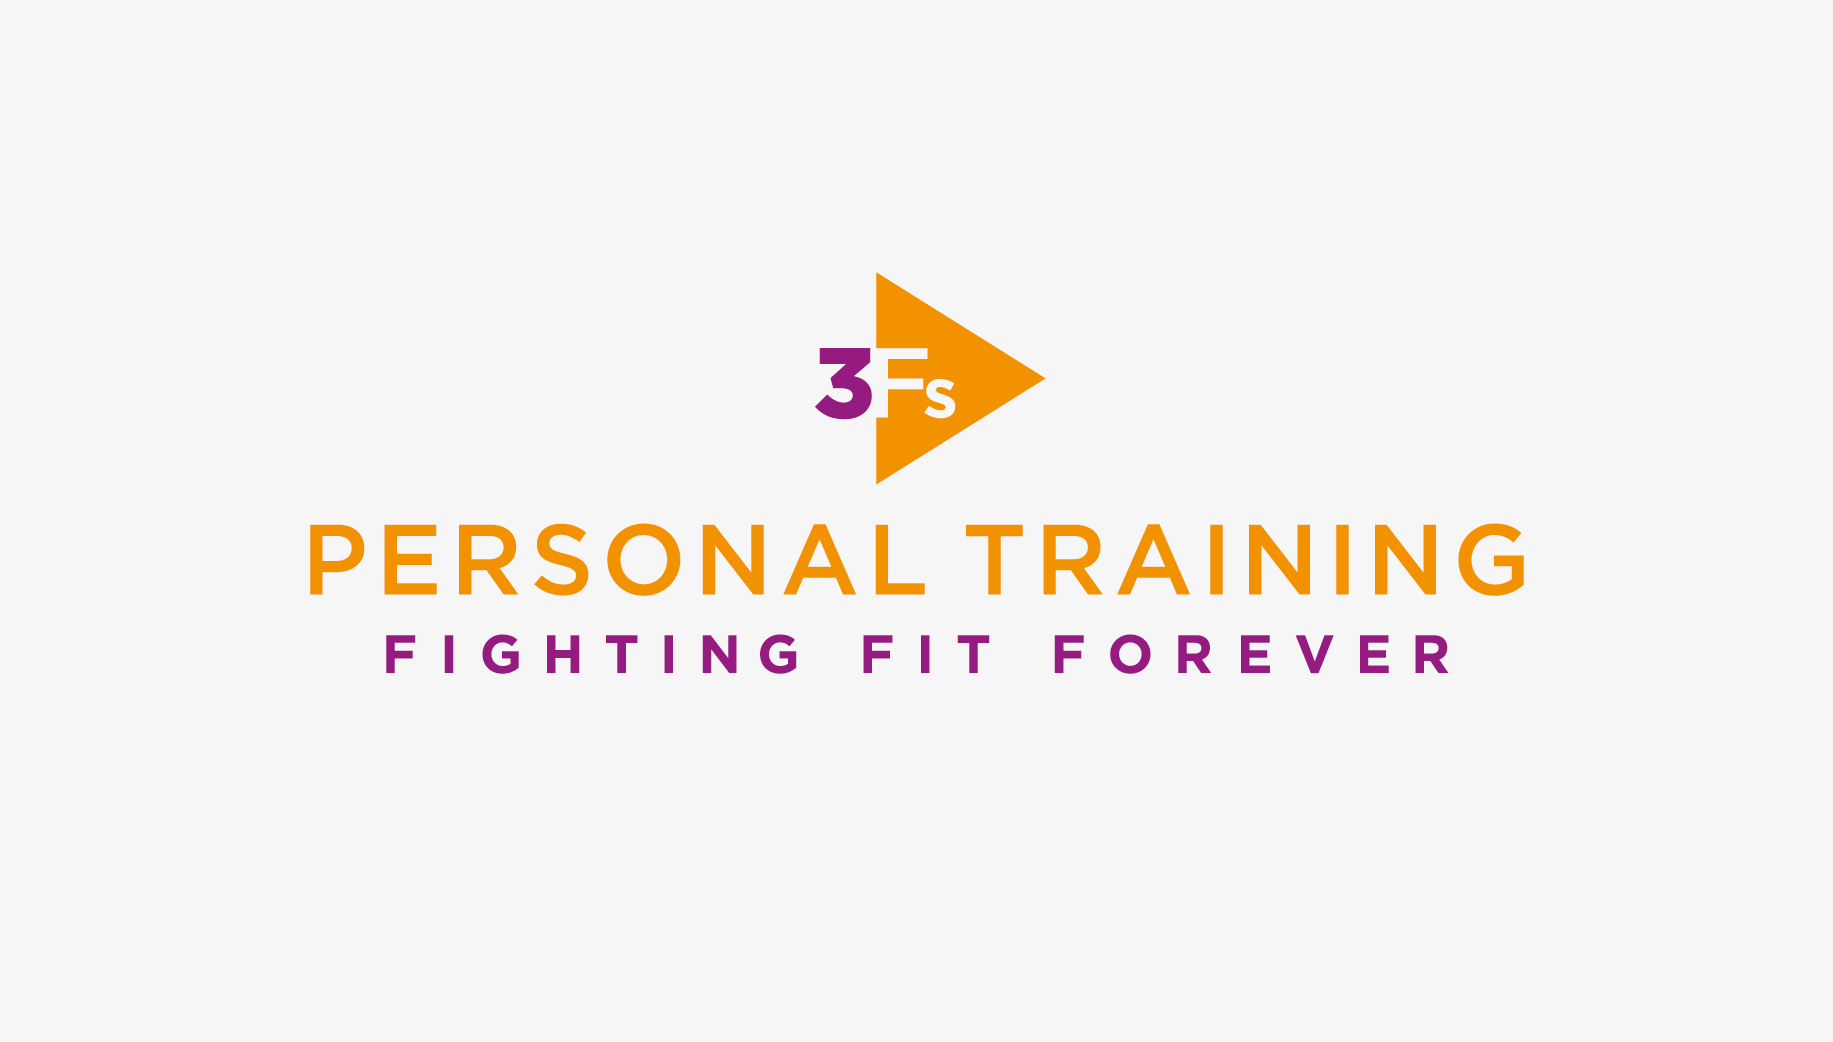 3Fs Personal Training logo in colour on white background